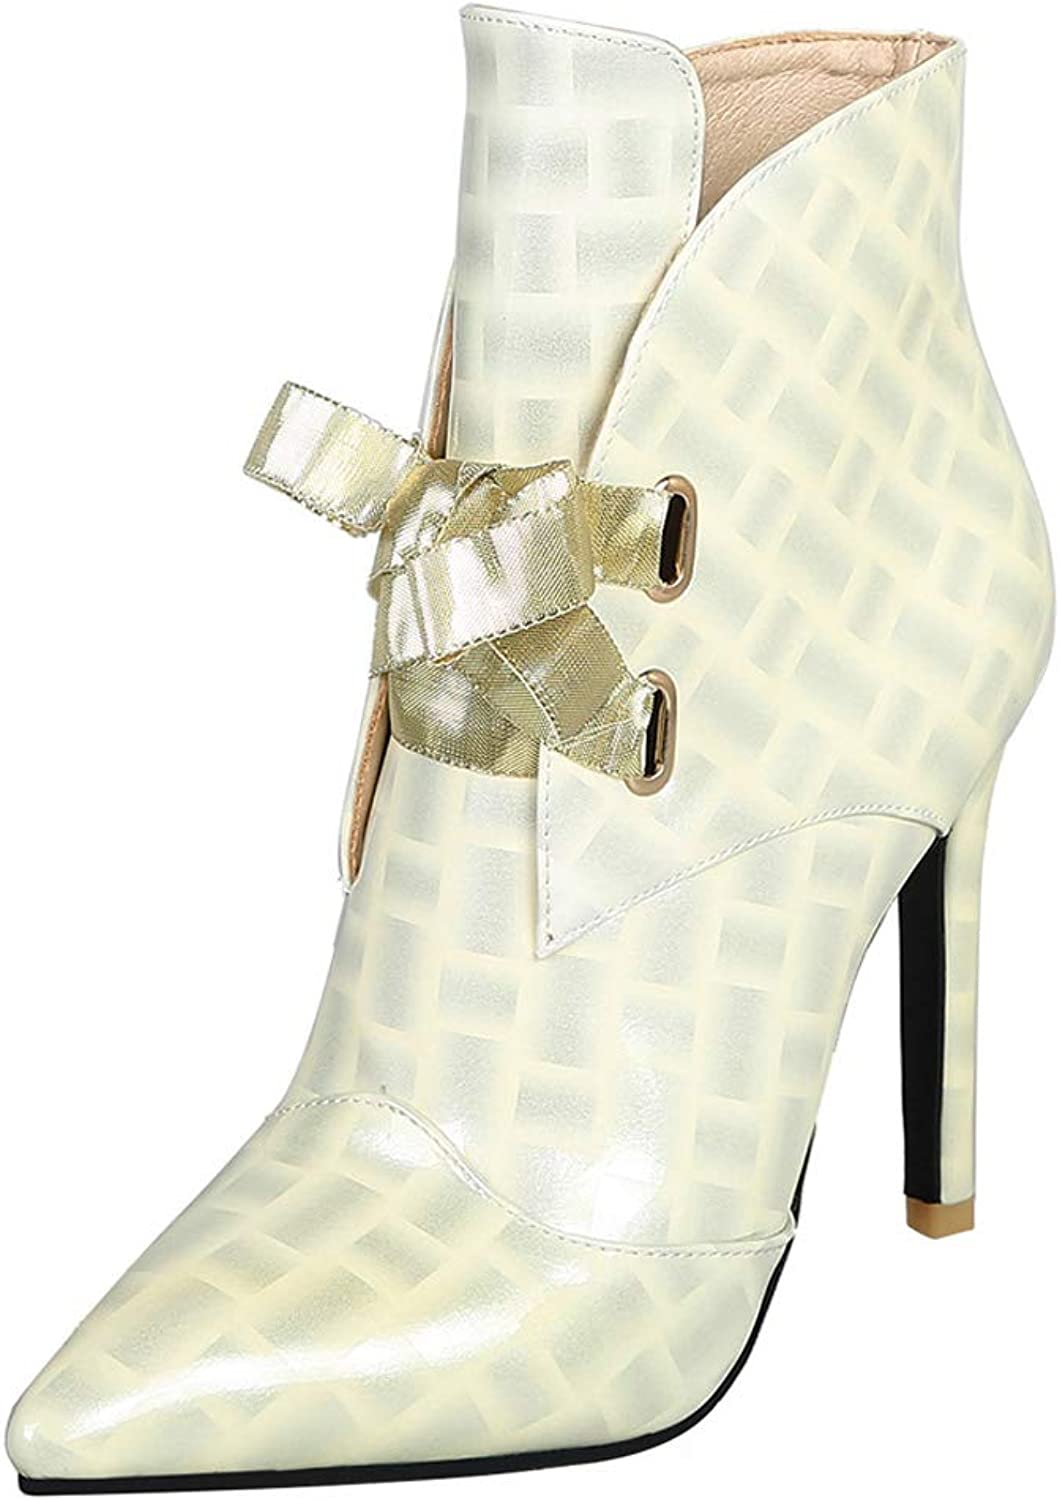 Vitalo Womens Lace Up High Heel Stiletto Ankle Boots Pointed Toe Patent Leather Booties